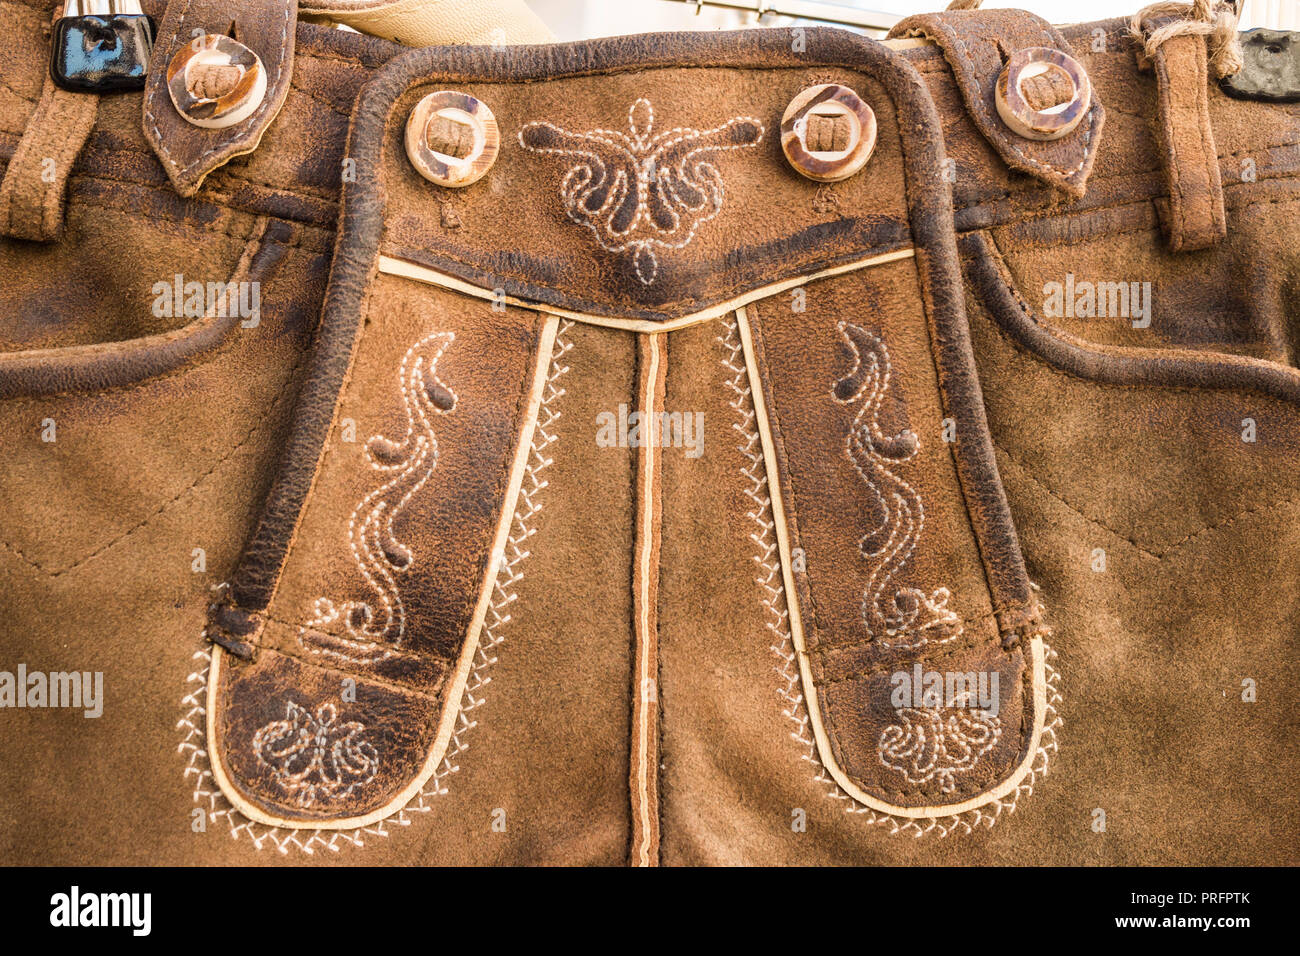 Closeup of flap (drop front) of  traditional bavarian and austrian lederhosen (leather pants). Lether relief and embroidered ornament. Decor elements. - Stock Image